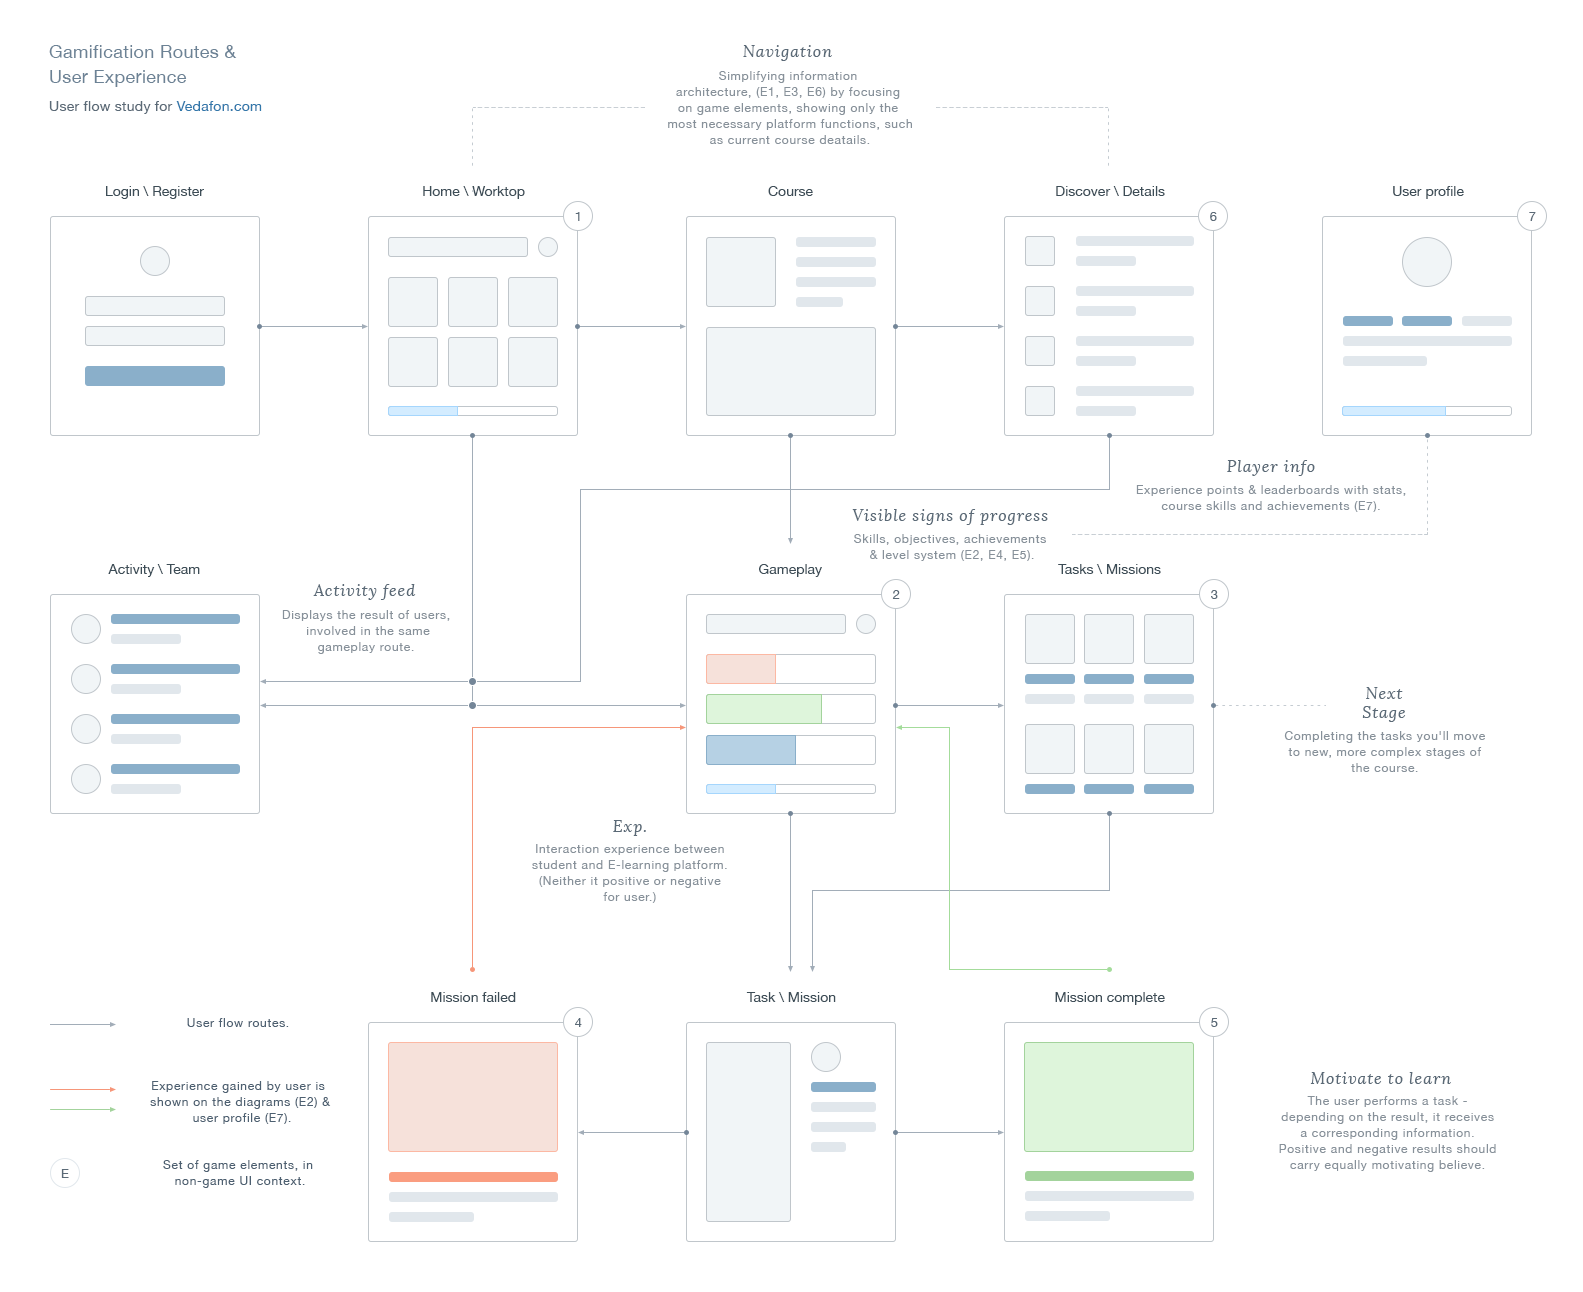 Ux Gamification Routes With Images